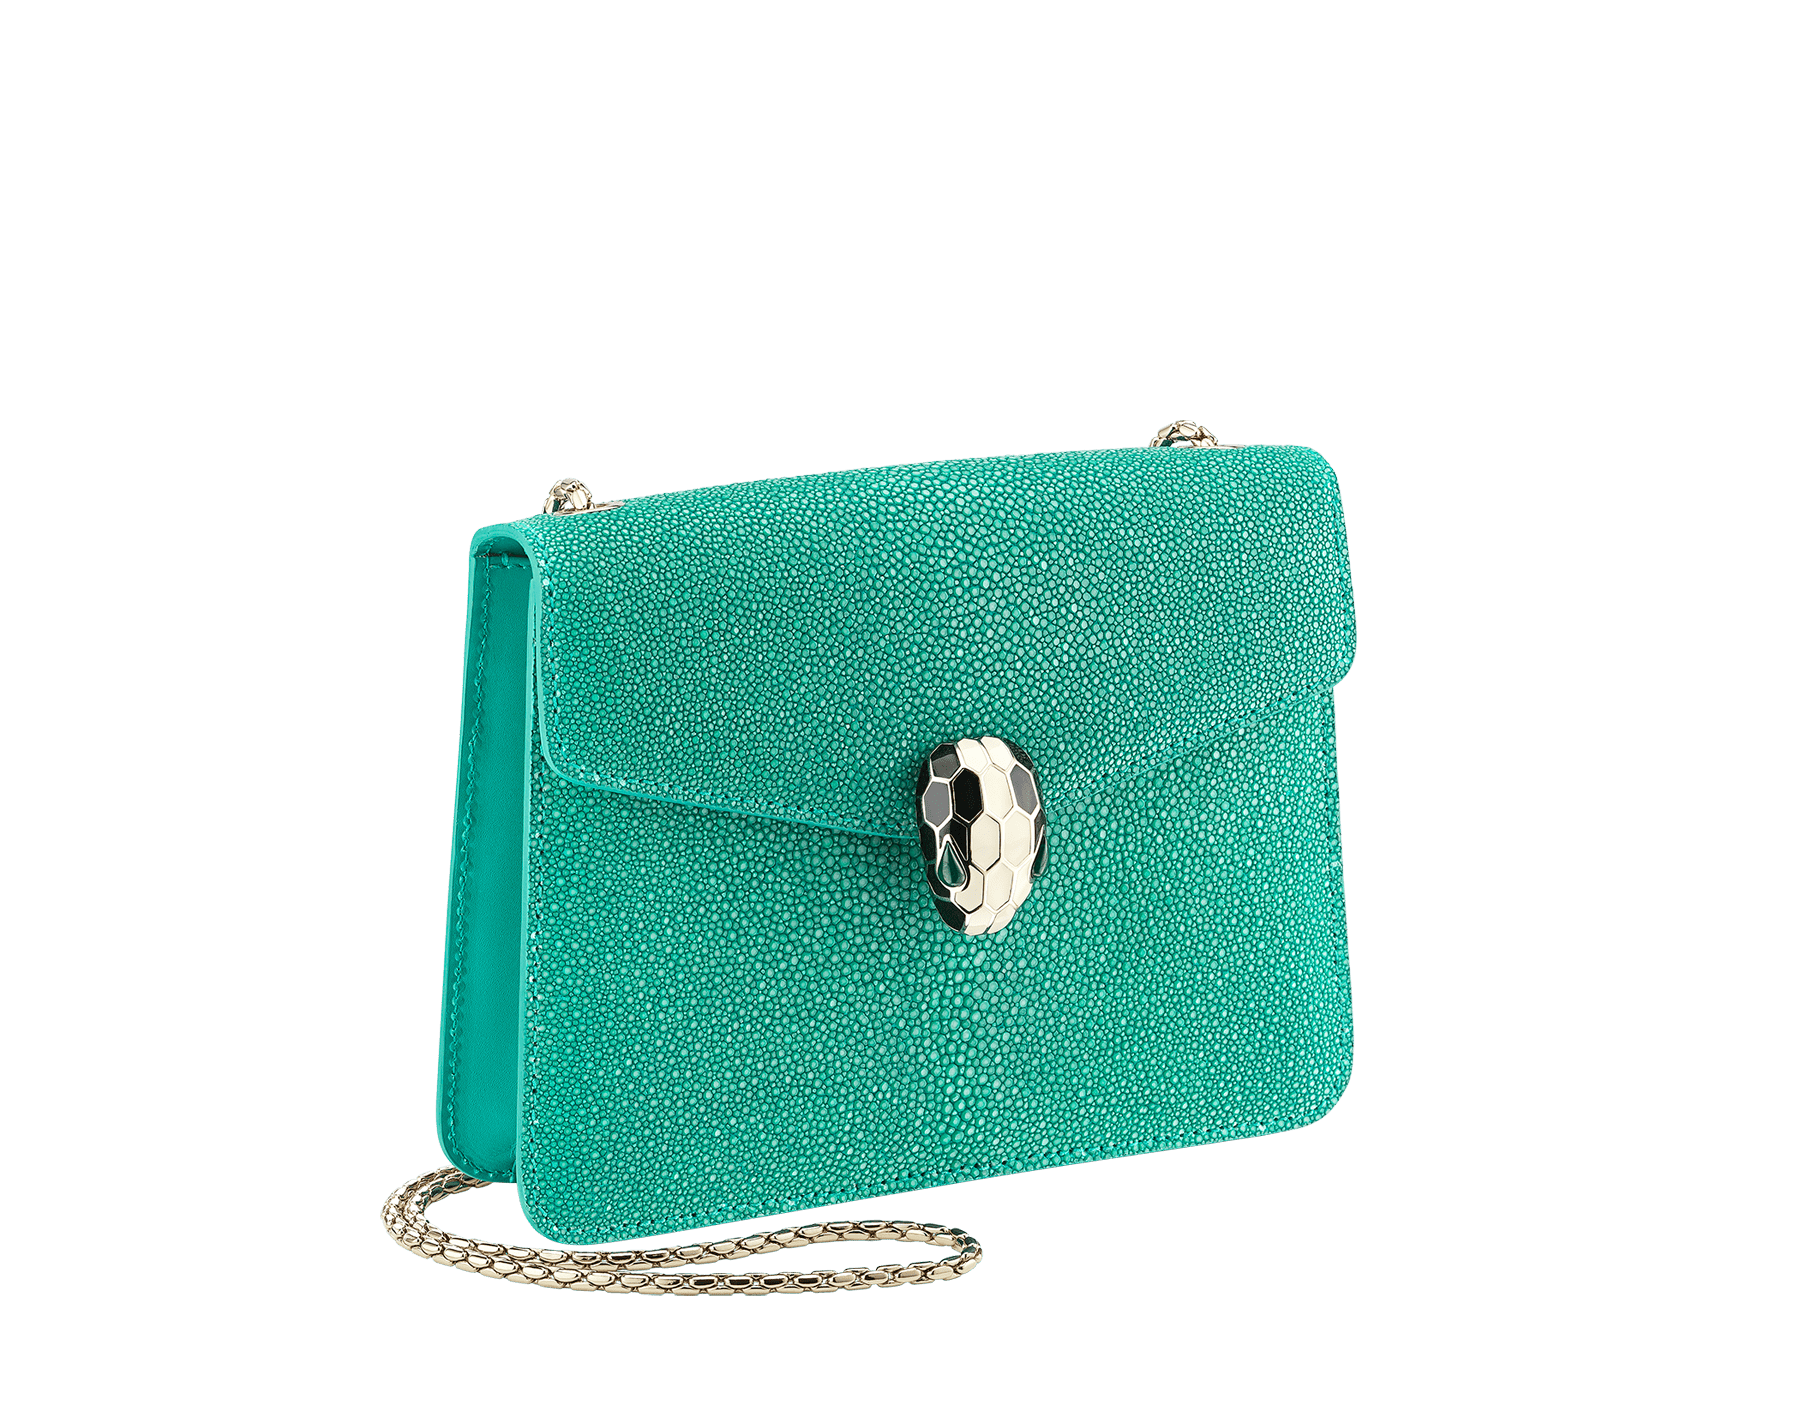 Serpenti Forever crossbody bag in tropical turquoise galuchat skin. Snakehead closure in light gold plated brass decorated with black and white enamel, and green malachite eyes. 288067 image 2